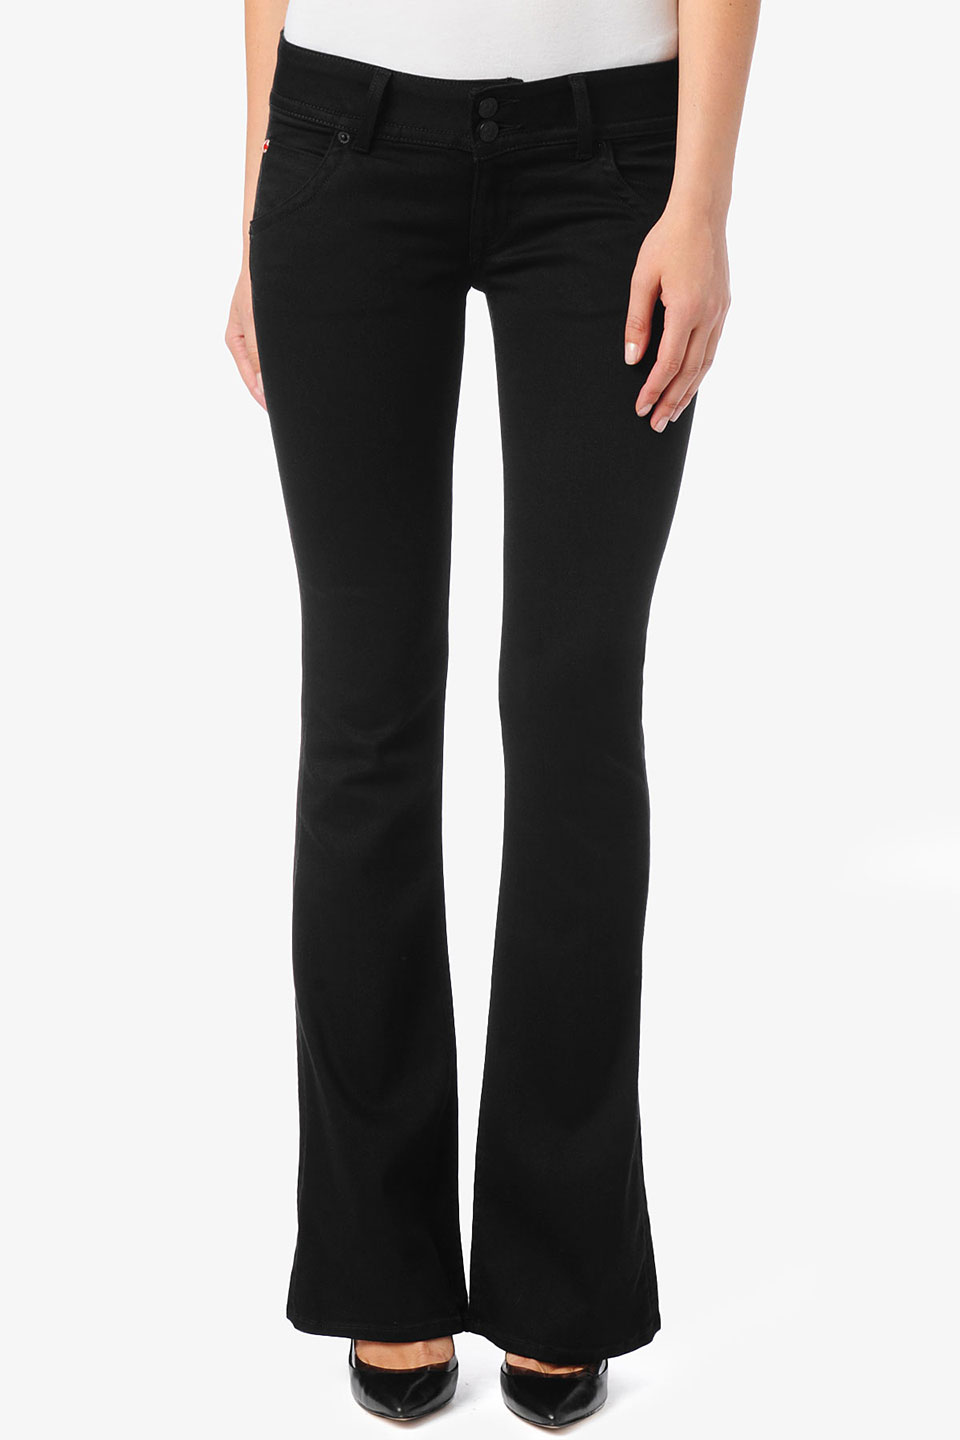 Simple New Balance Black Bootcut Pants  Women  Zulily